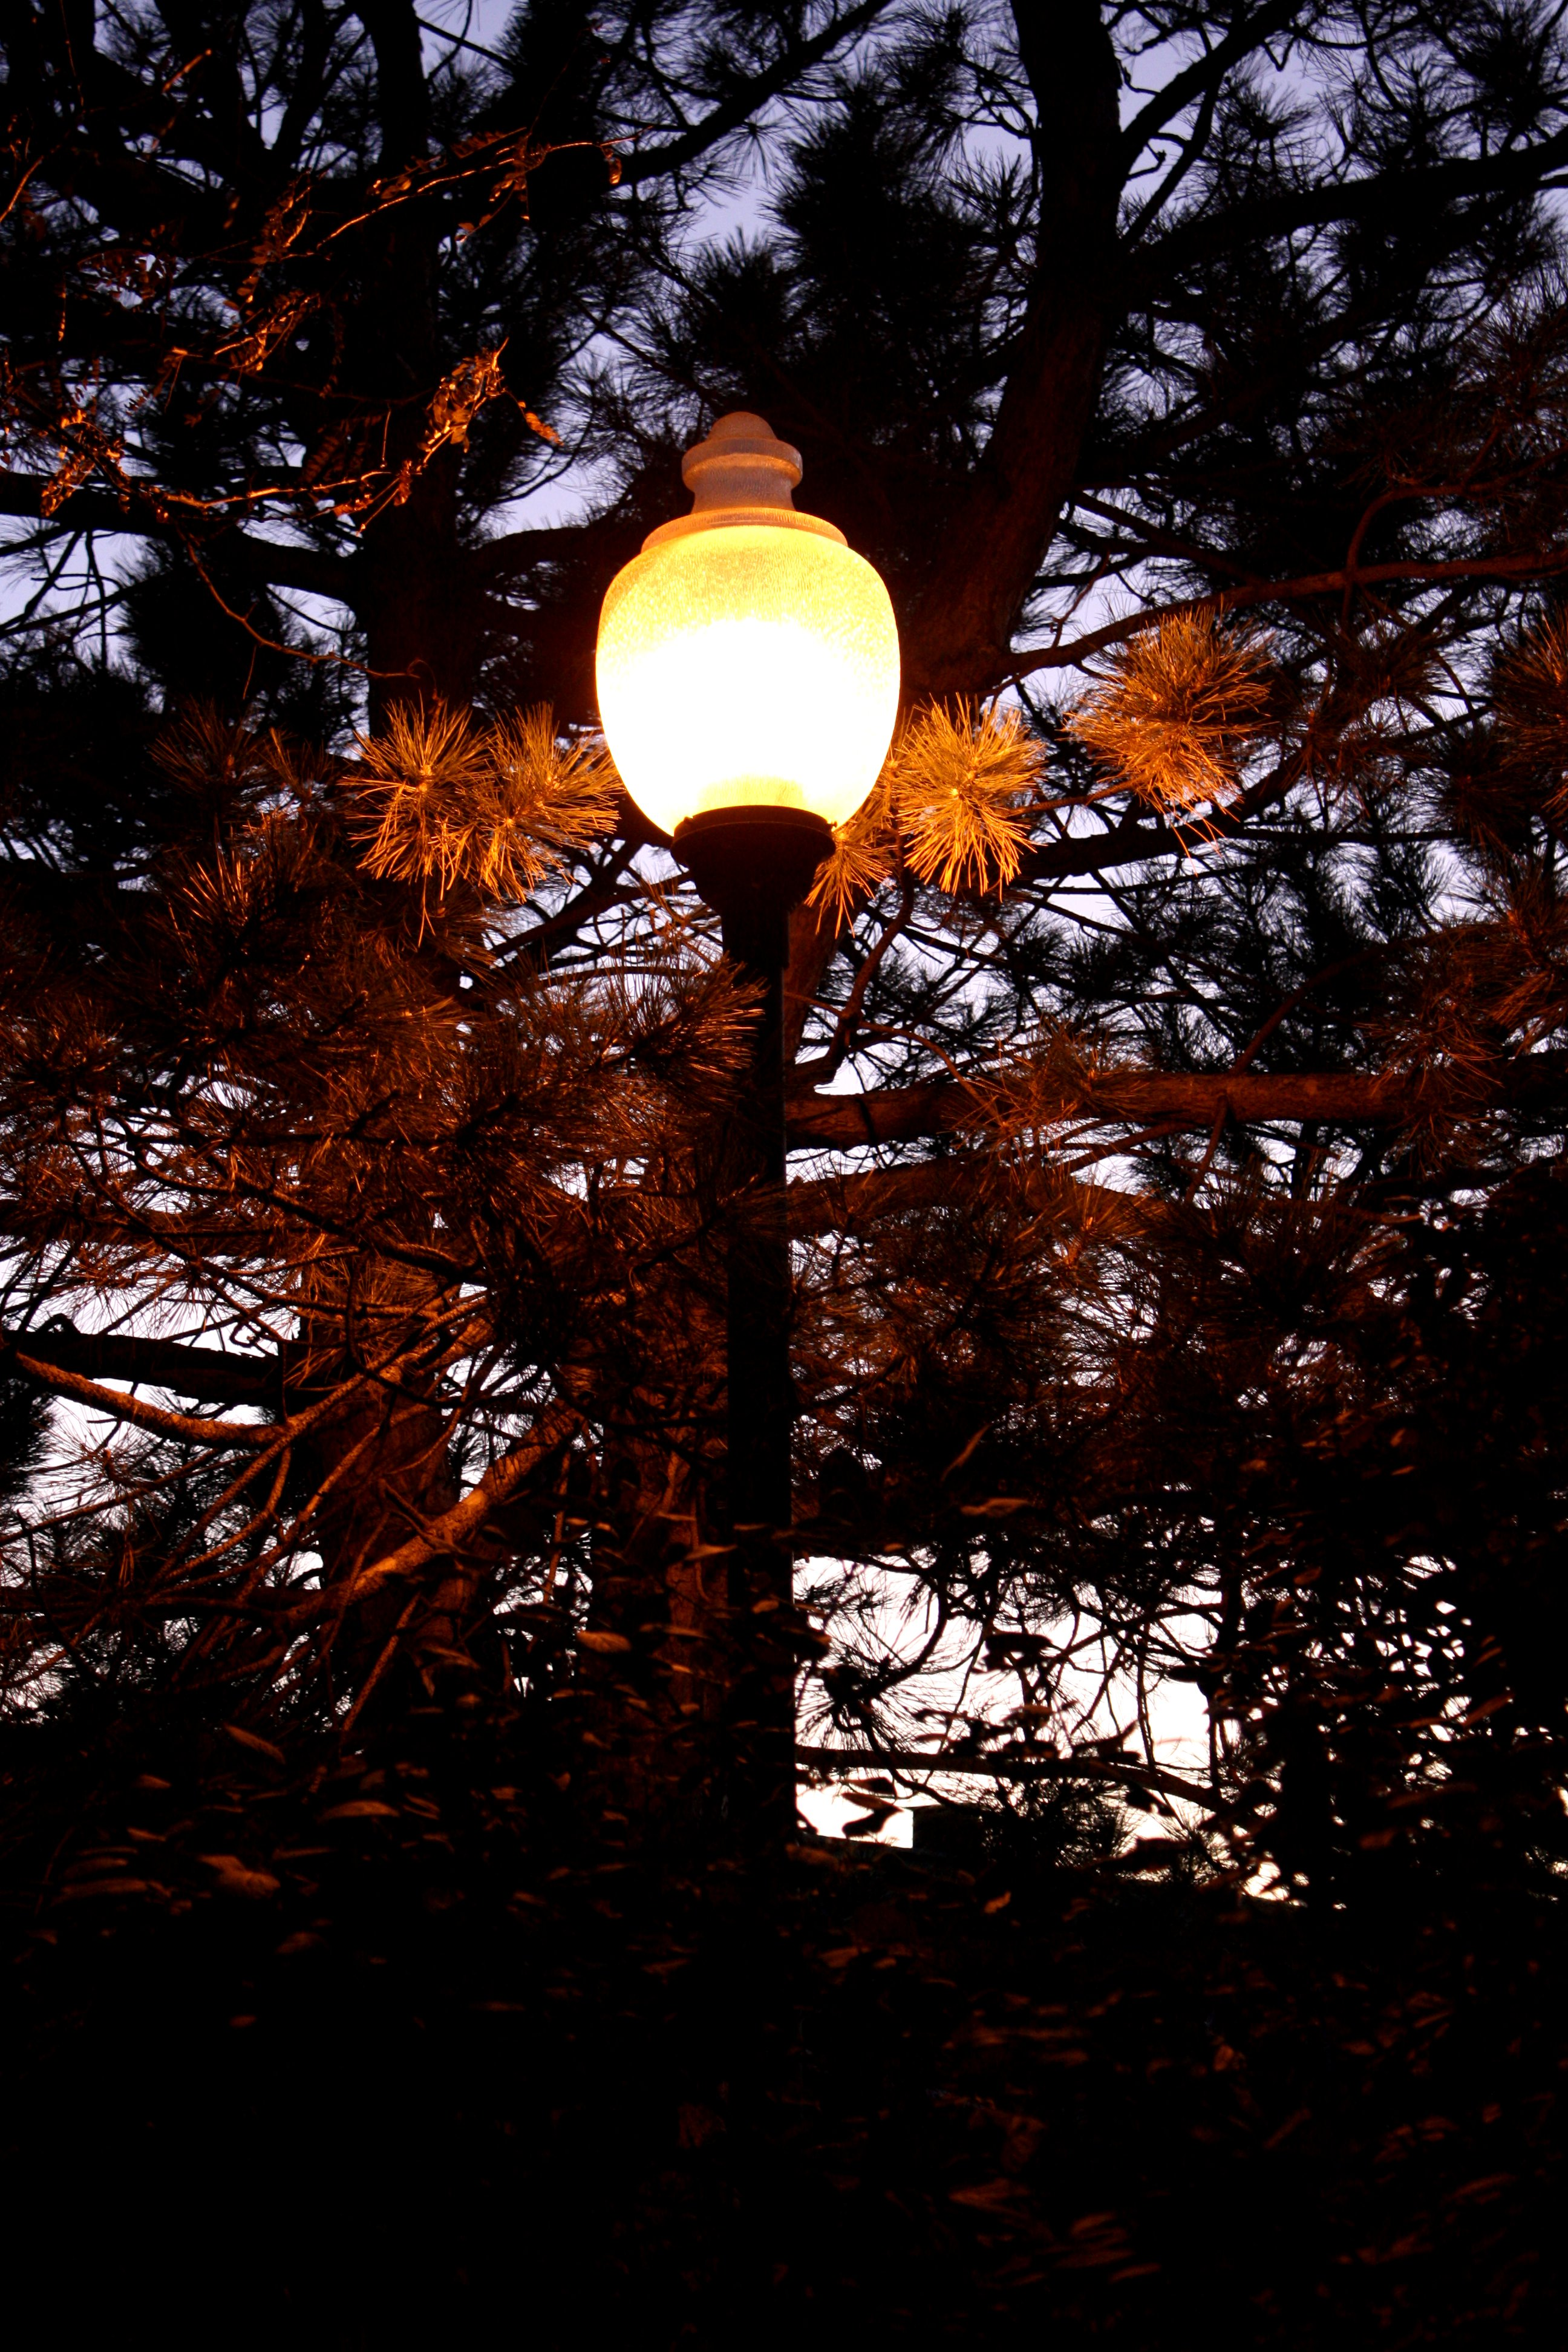 Lit Street Lamp Among Pine Branches At Dusk Picture Free